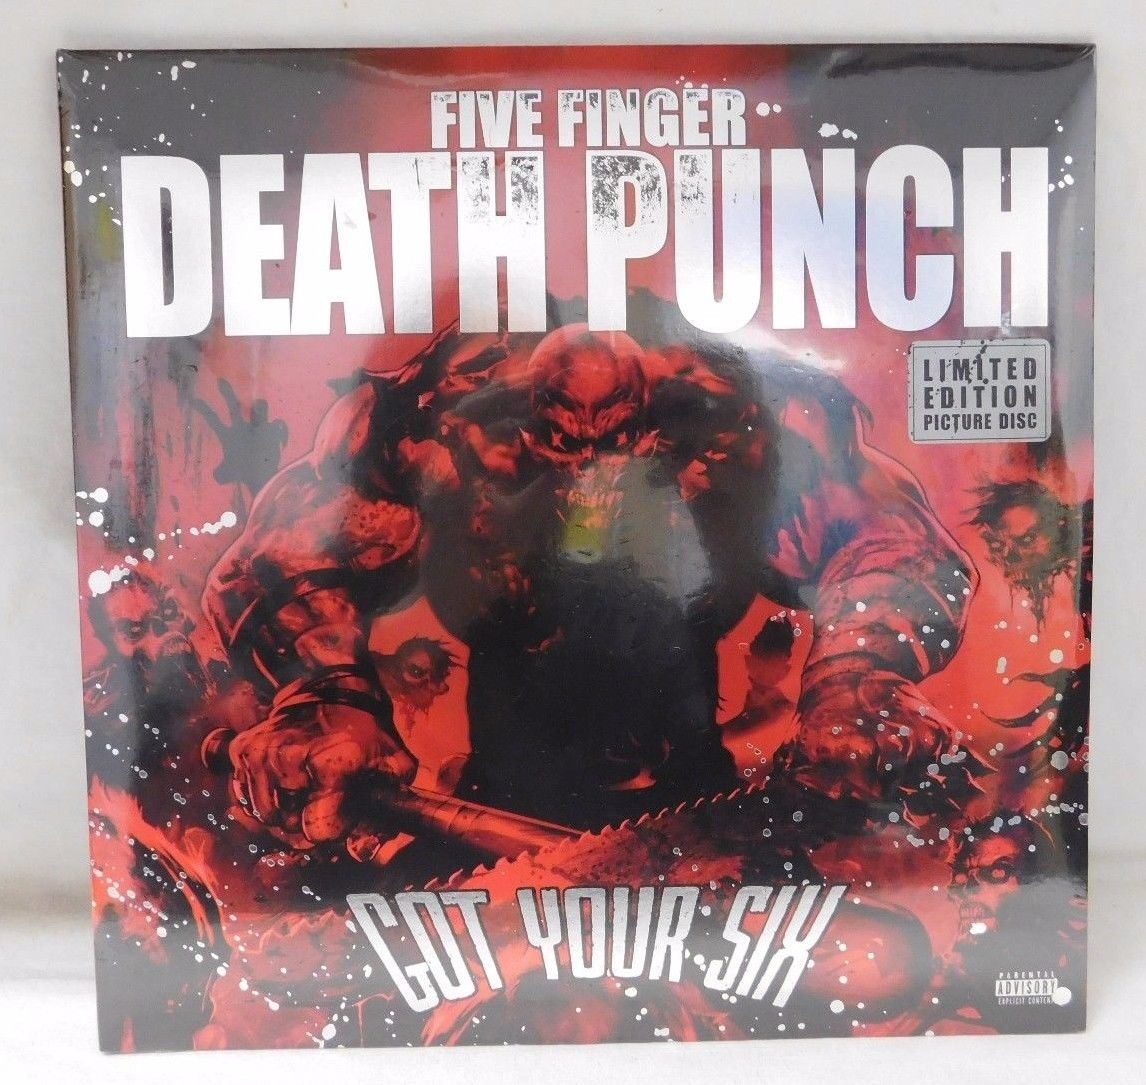 Sealed New Five Finger Death Punch Limited Edition